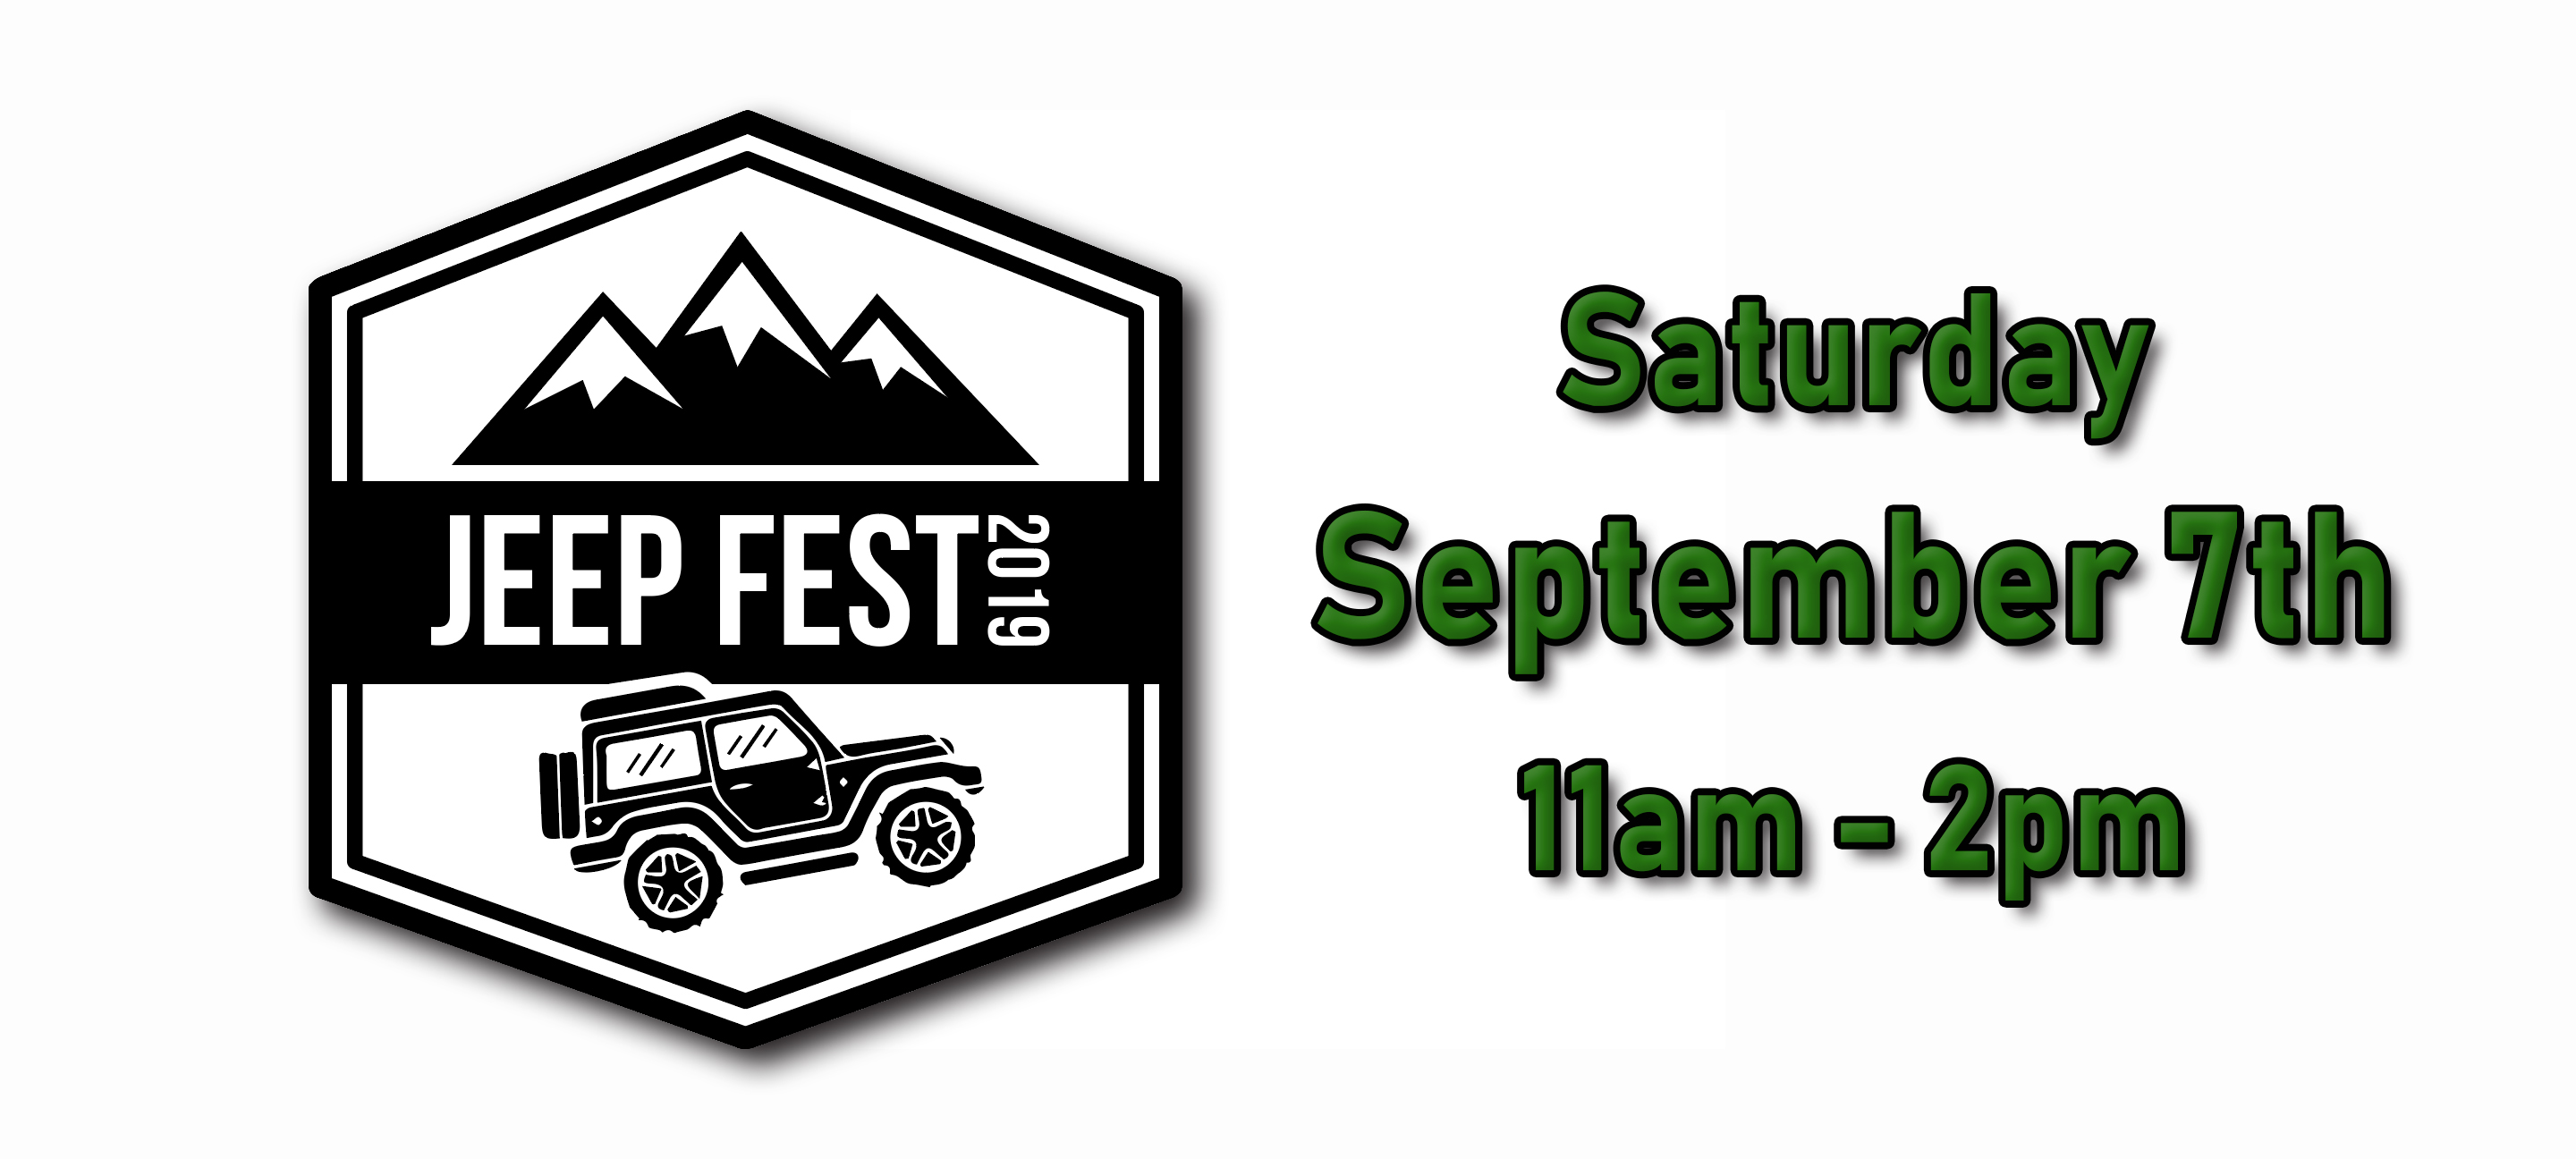 Jeep Fest 2019 - Saturday, September 7th